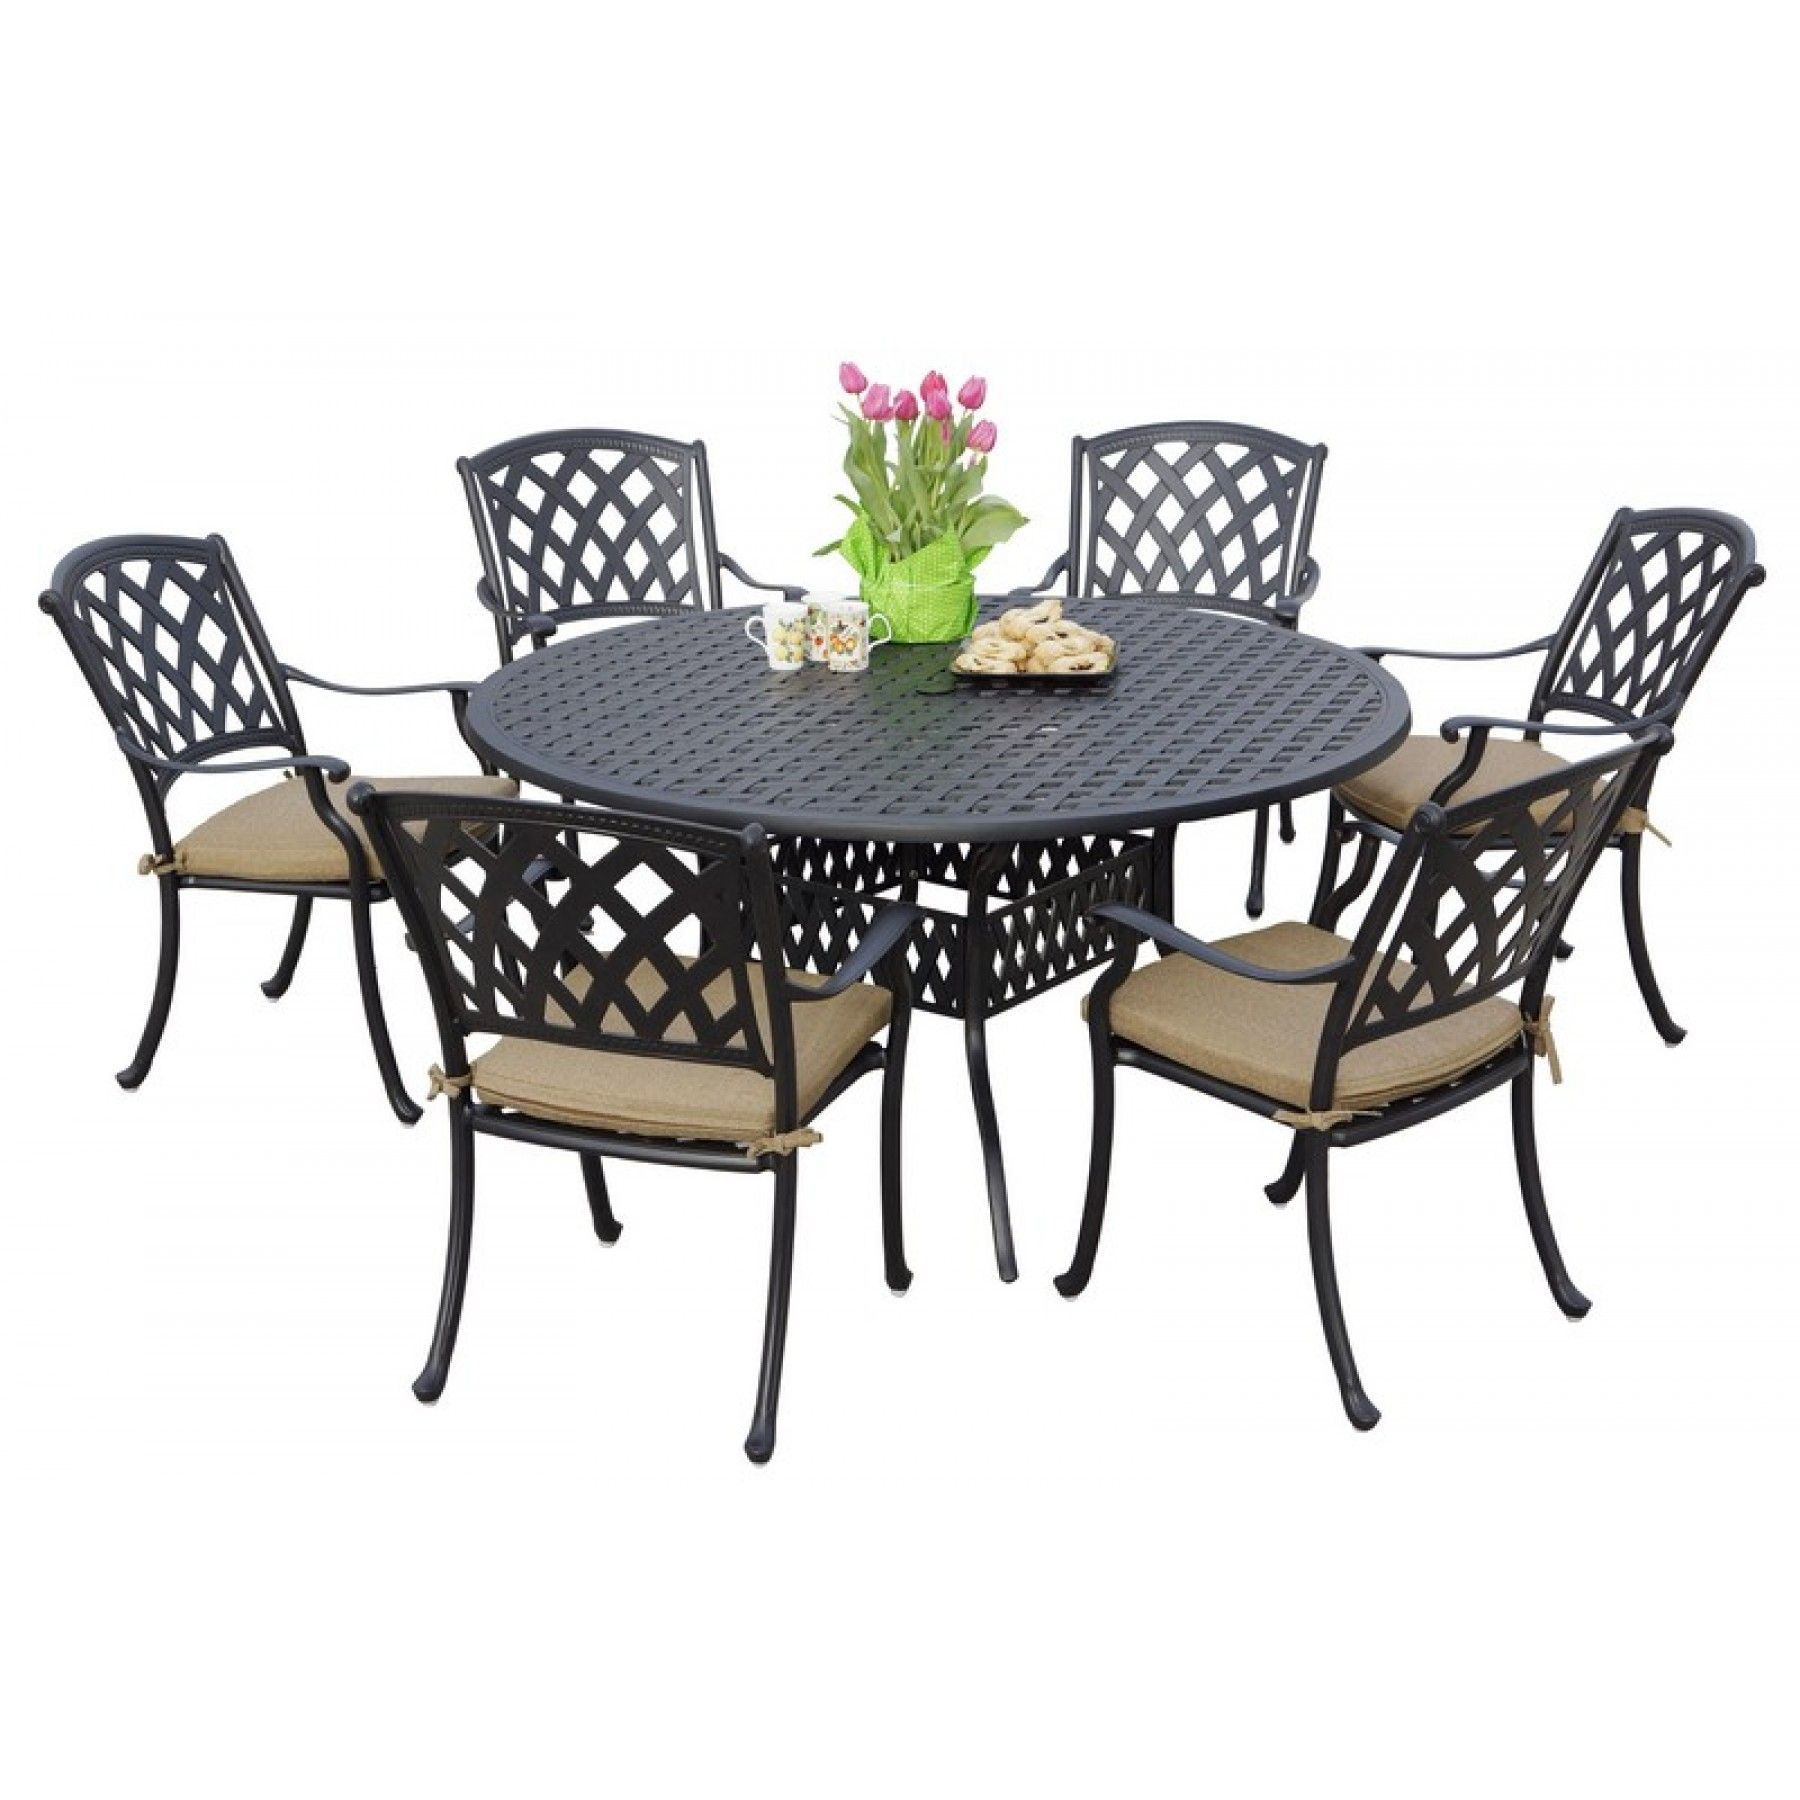 Ocean View Cast Aluminum 7Piece Dining Set With Cushions Round Amusing 7 Piece Round Dining Room Set Design Decoration